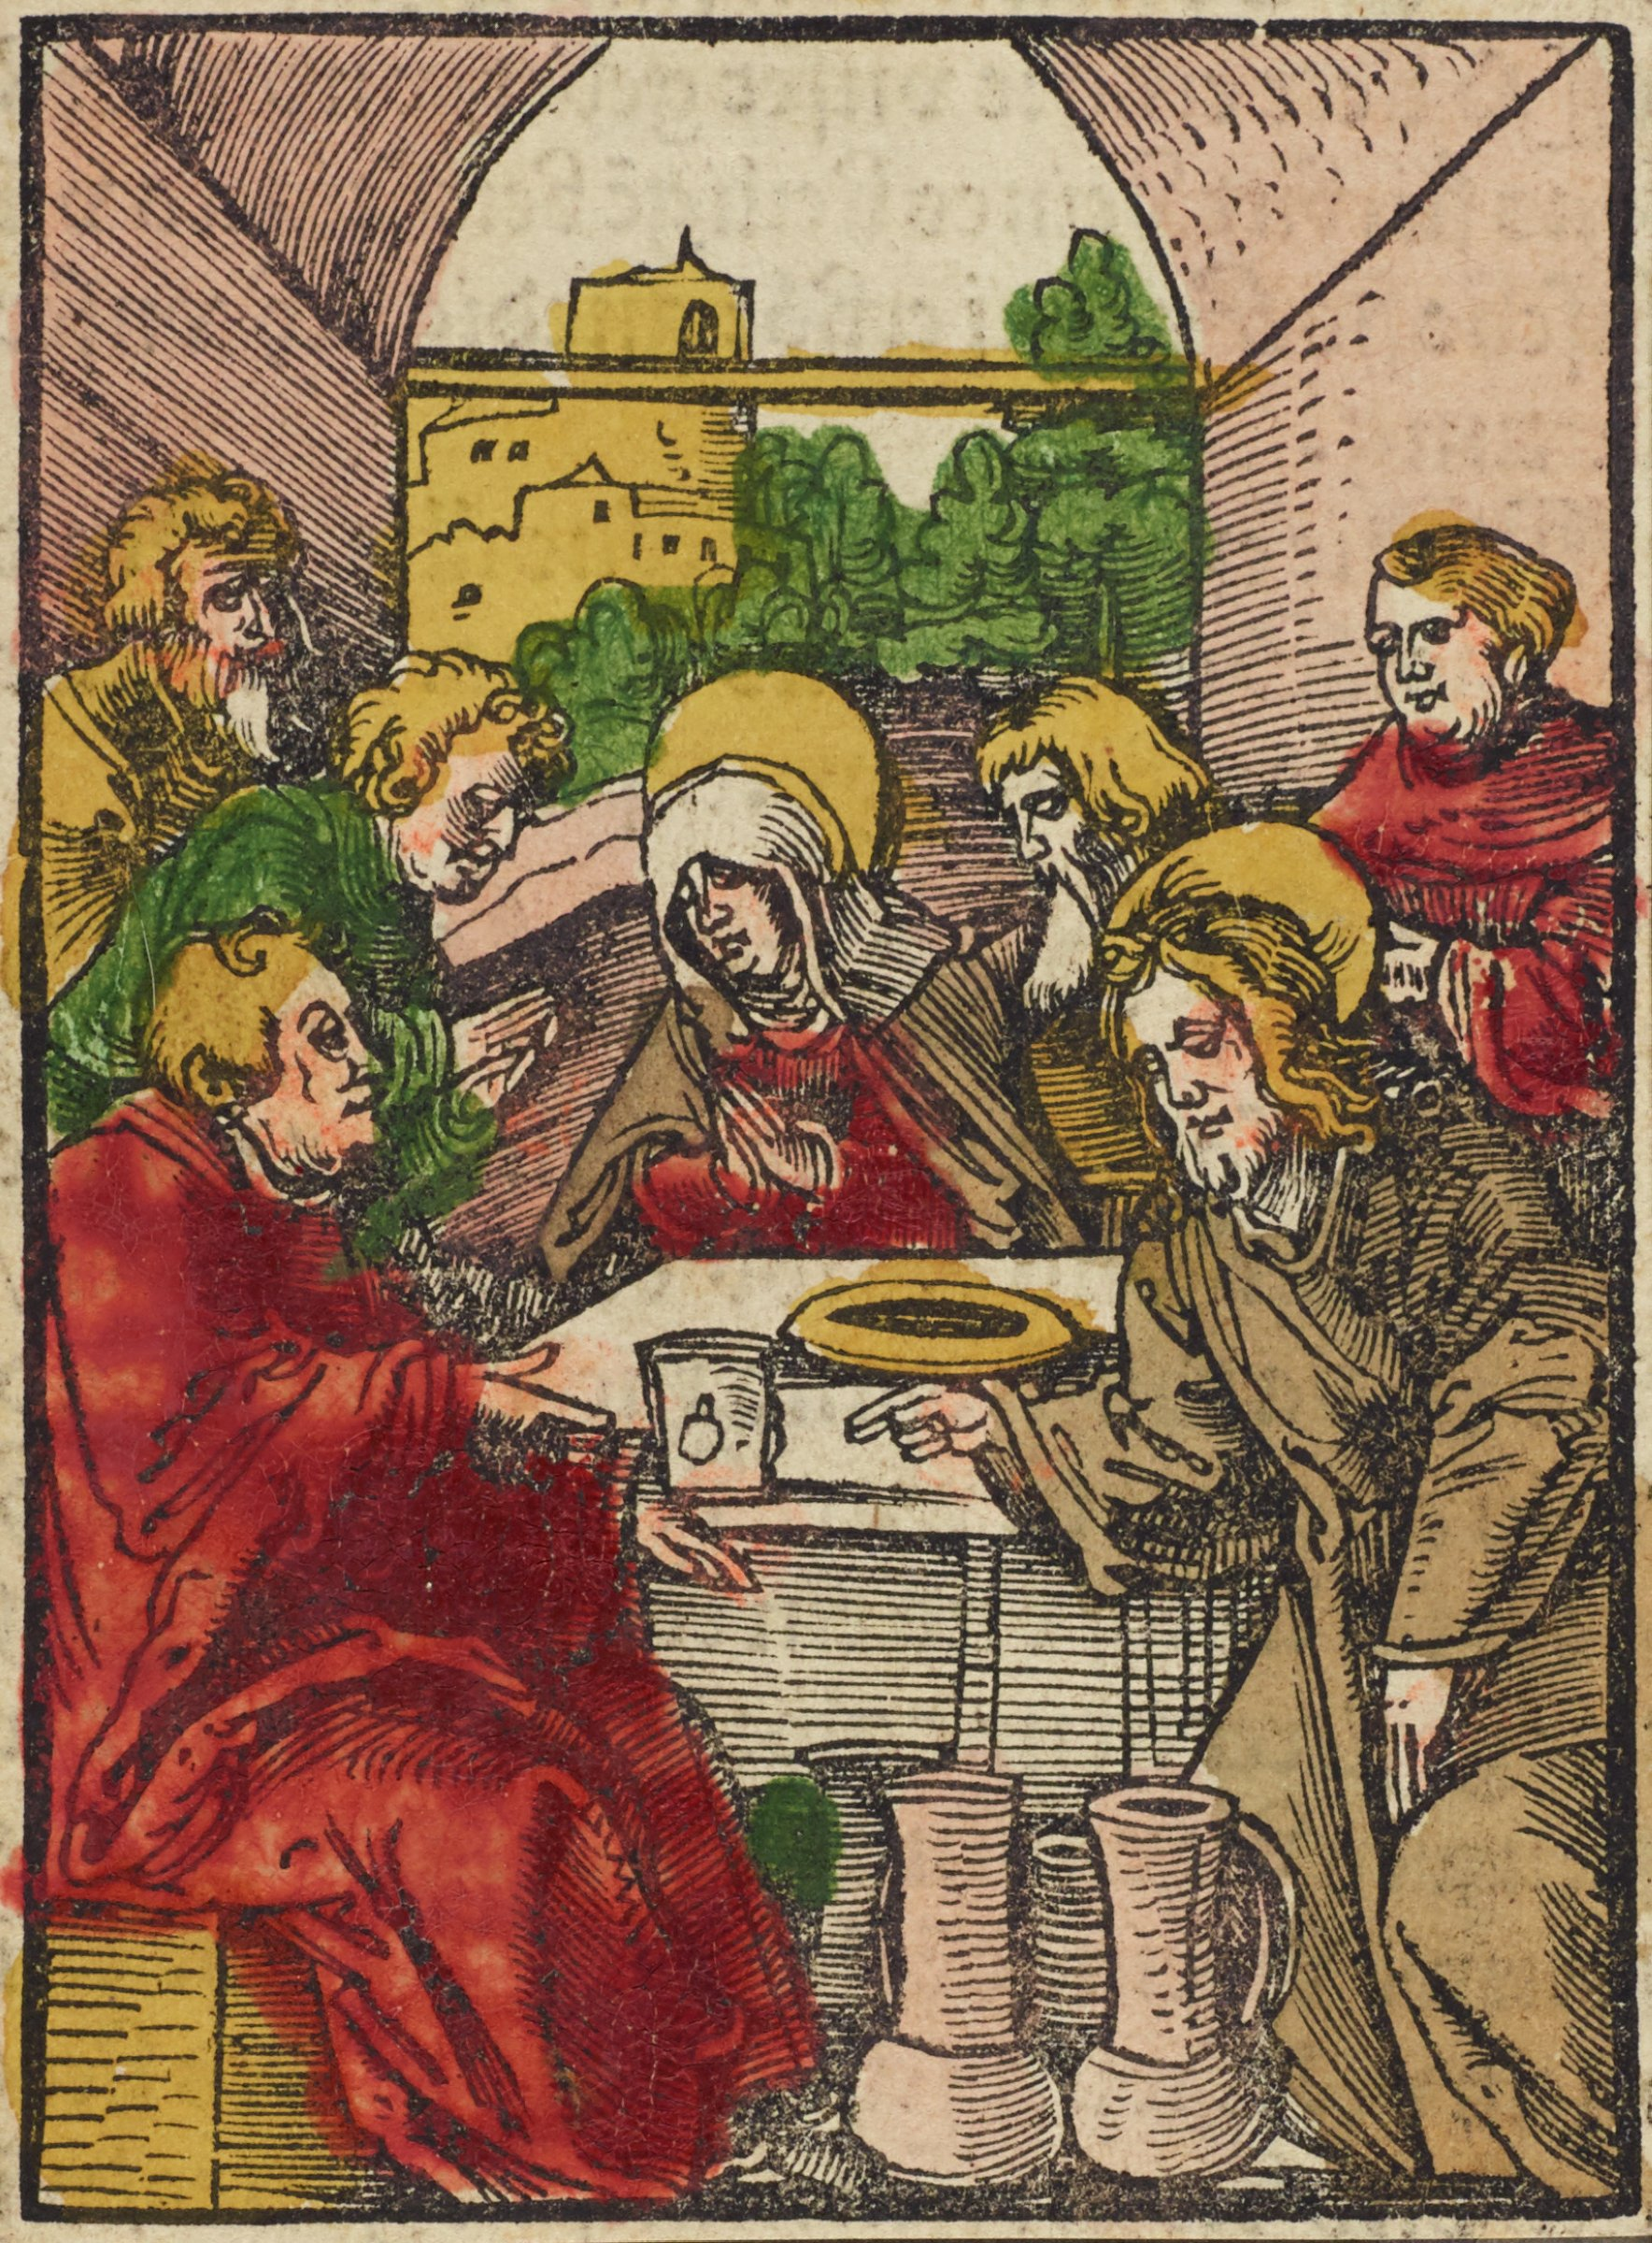 Seven figures are gathered around a table in a small, vaulted room that is open in the back with a vista onto a cityscape. A woman, Mary, sits in the middle behind the table. A man in a red robe is sitting in the left foreground. Jesus is in the lower left with his proper right hand gesturing towards multiple jugs before him with a blessing gesture. The image is colored with yellow, green, red, and brown.